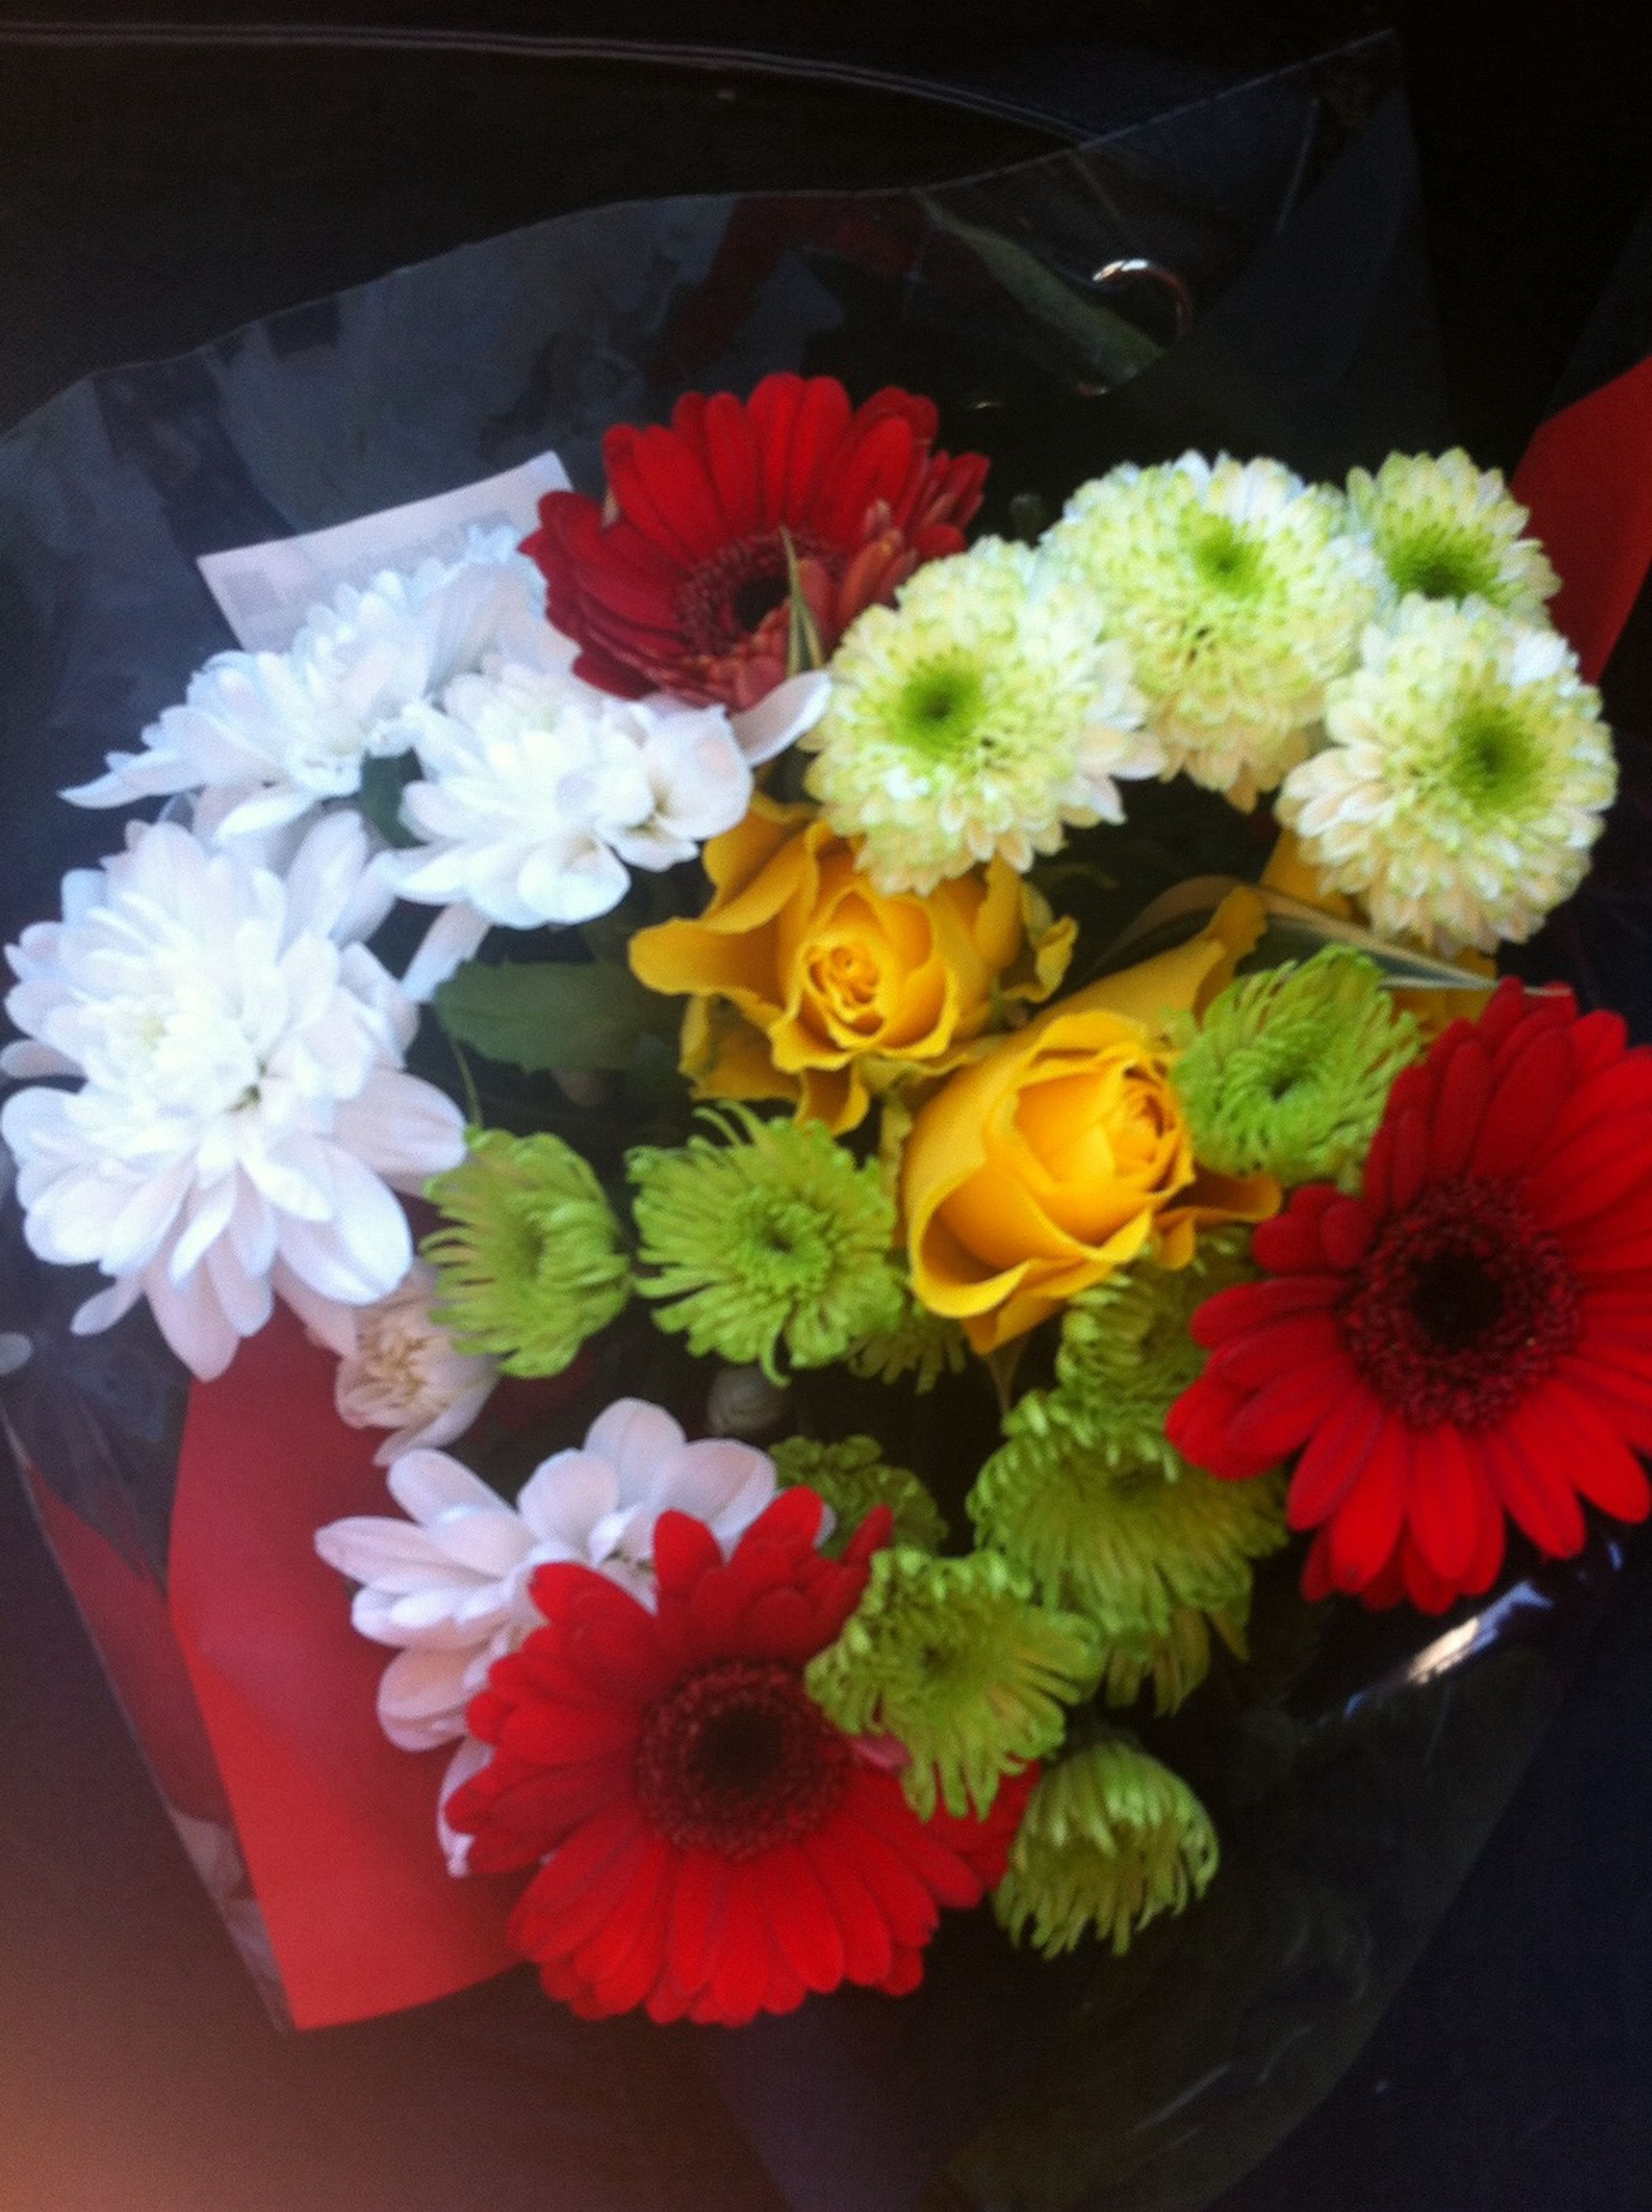 flower, freshness, petal, indoors, fragility, flower head, bouquet, vase, high angle view, beauty in nature, red, bunch of flowers, close-up, flower arrangement, nature, decoration, blooming, table, growth, multi colored